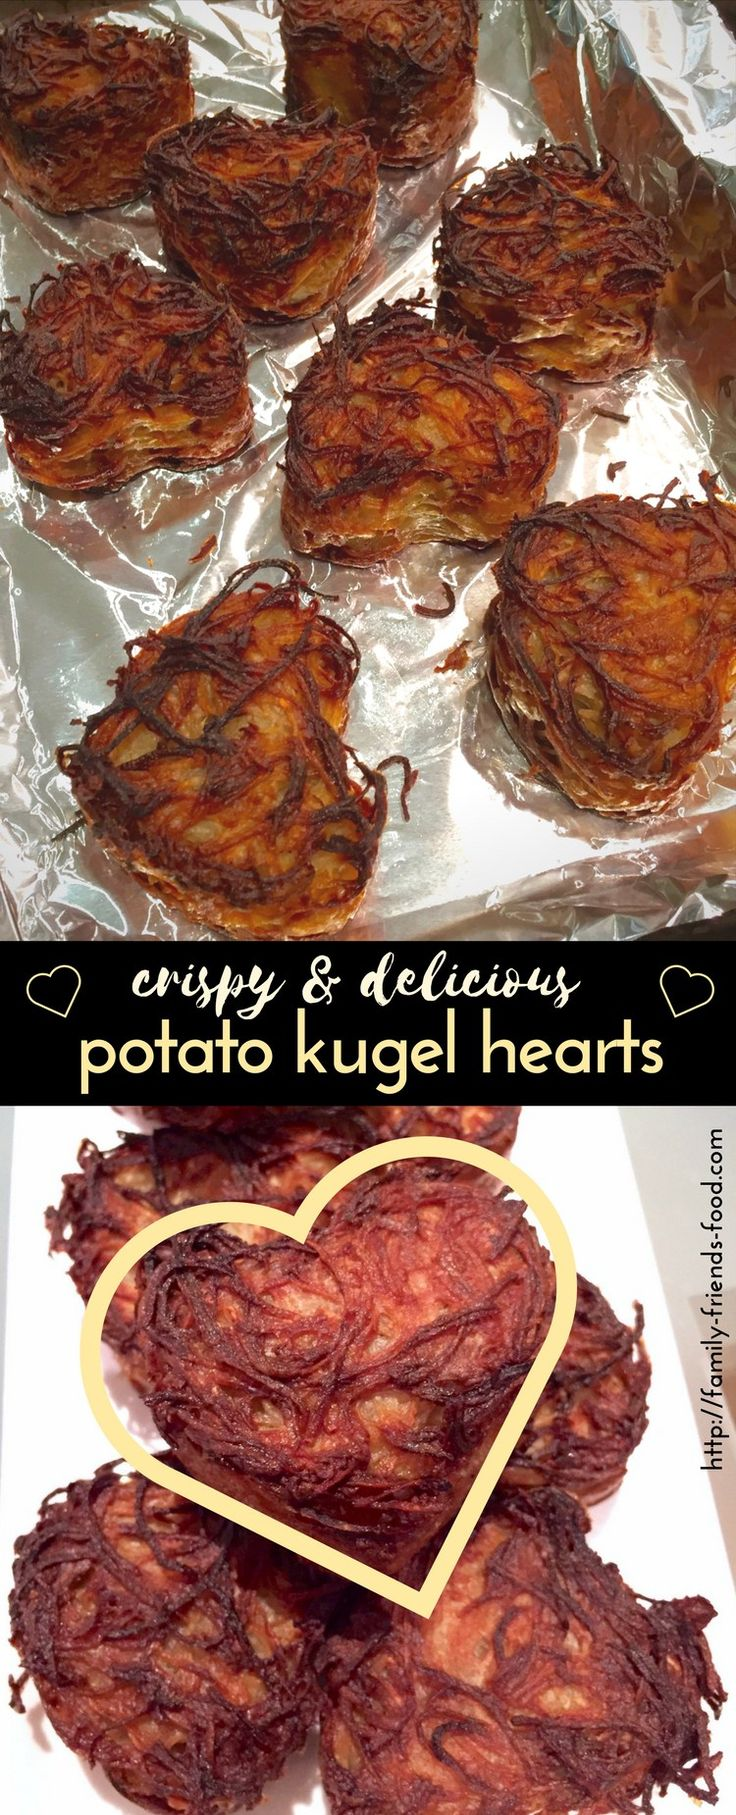 Say I love you with potato kugel! These individual kugels are crispy, golden, & deliciously heart-shaped. Soft on the inside, just like you!